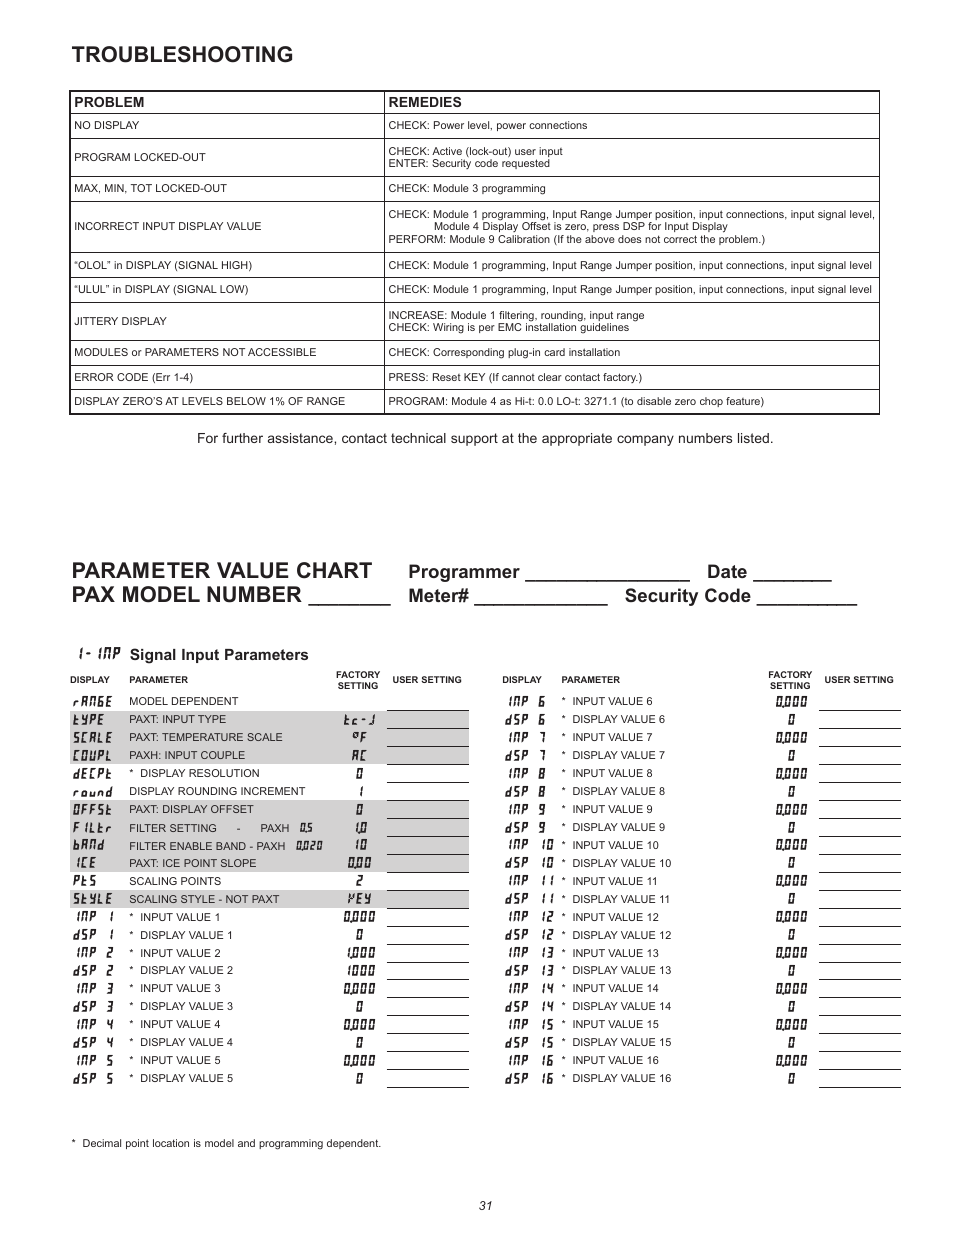 Troubleshooting, Parameter value chart, Pax model number